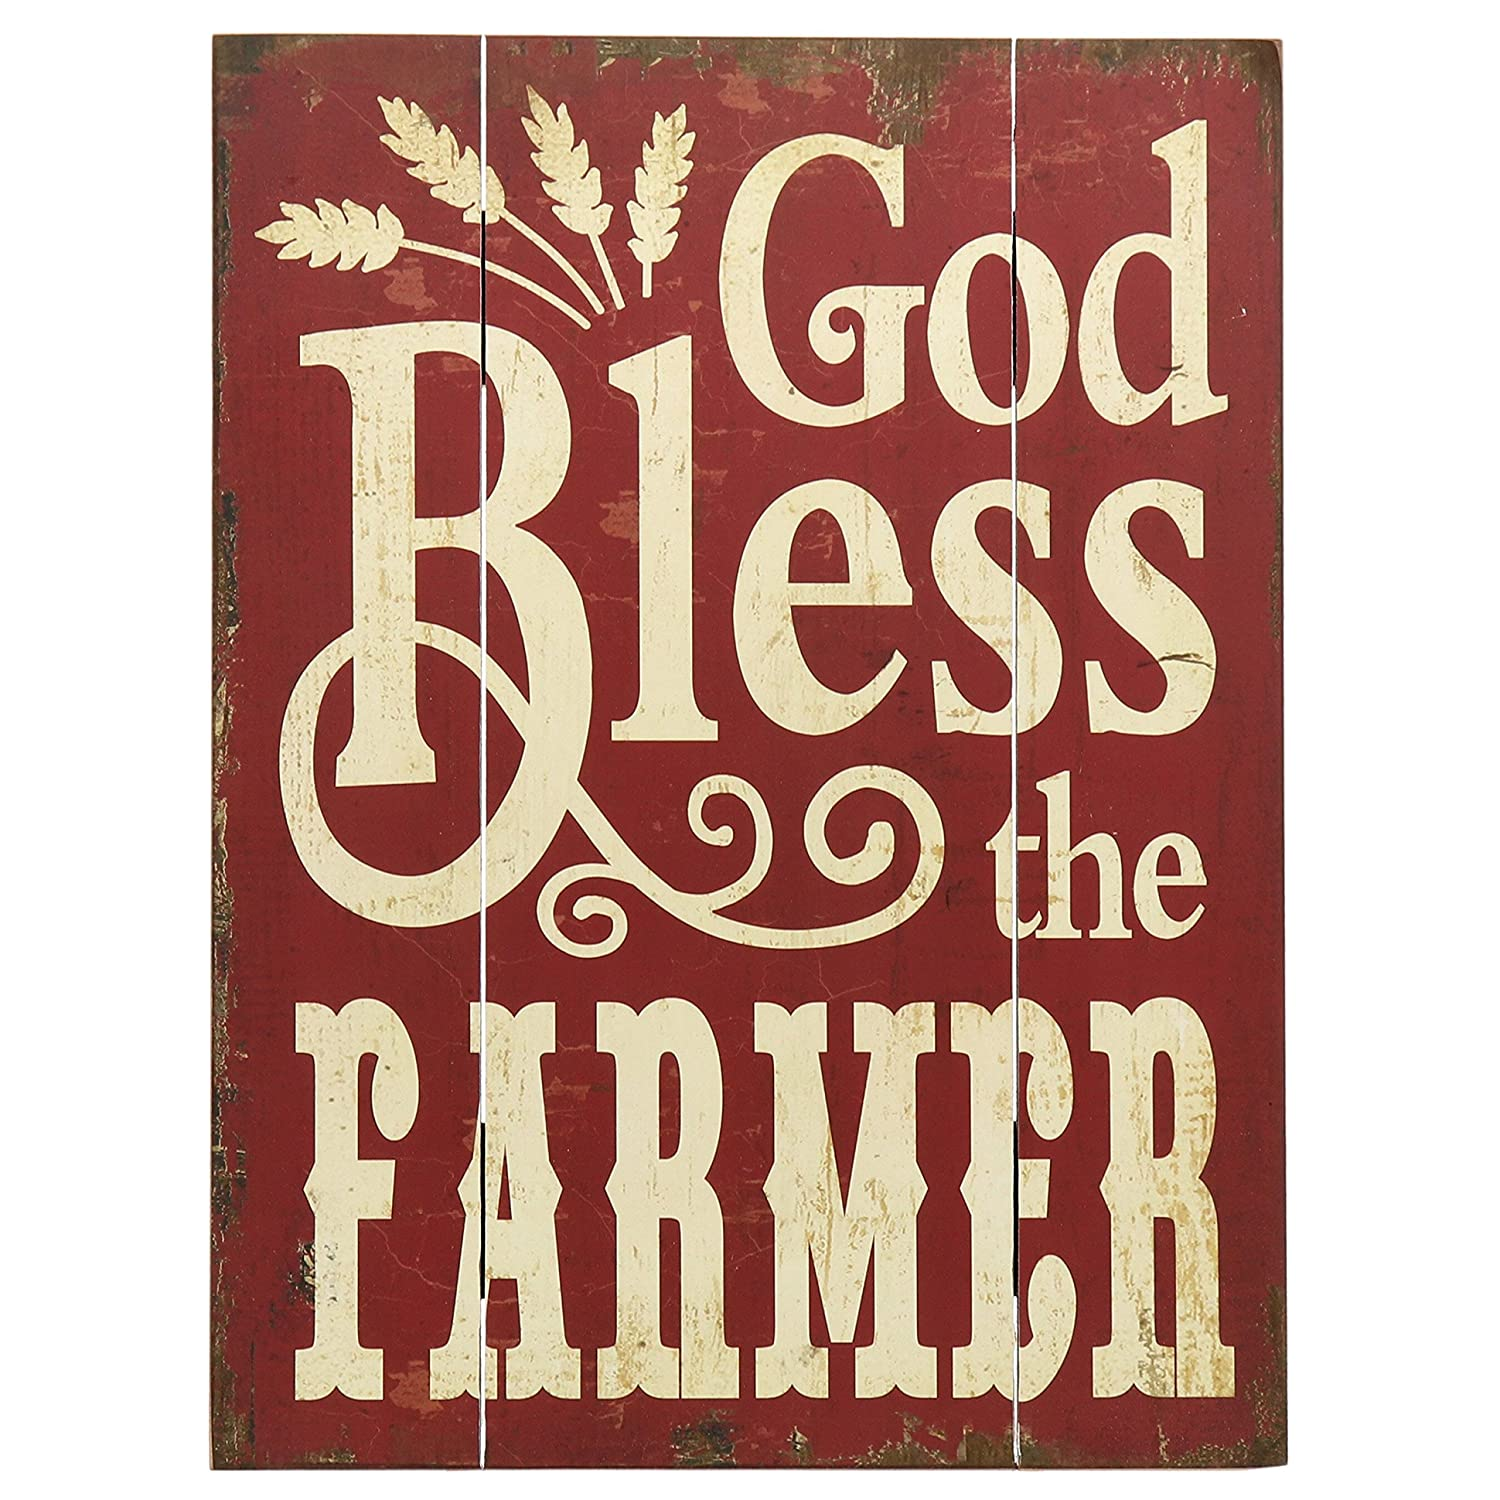 "Barnyard Designs God Bless The Farmer Retro Vintage Wood Plaque Bar Sign Country Home Decor 15.75"" x 11.75"""